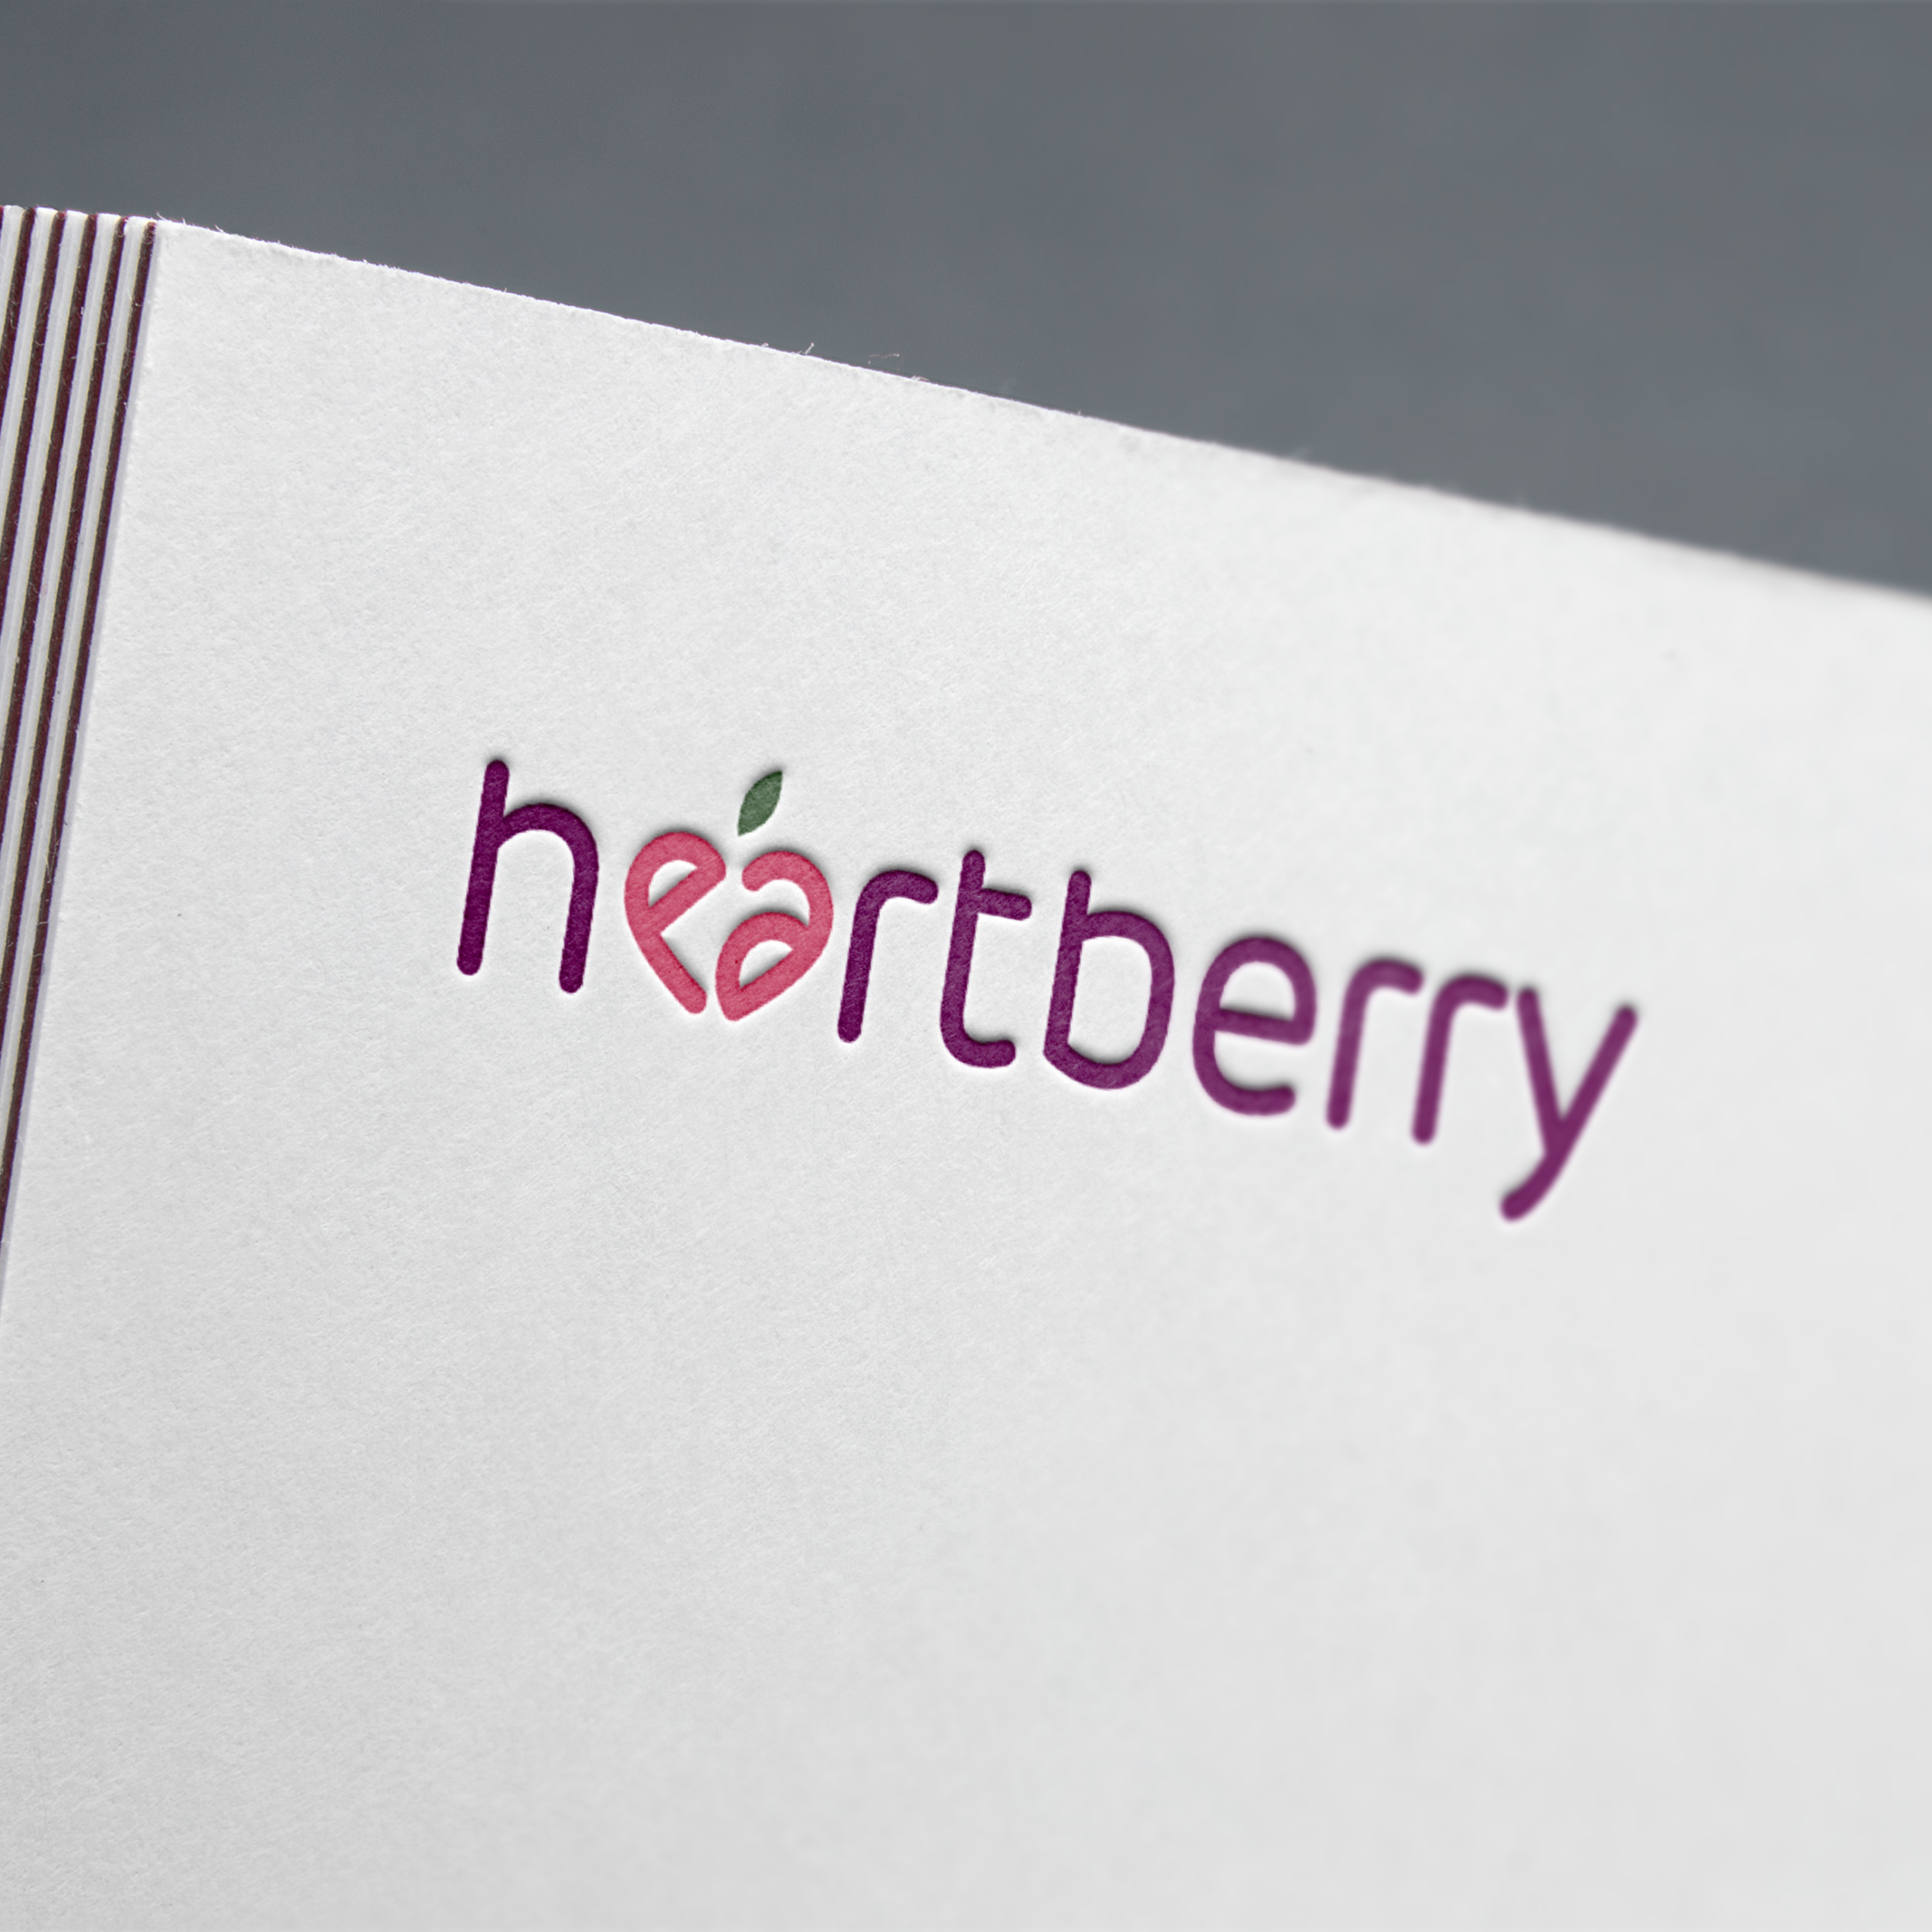 heartberry-logo